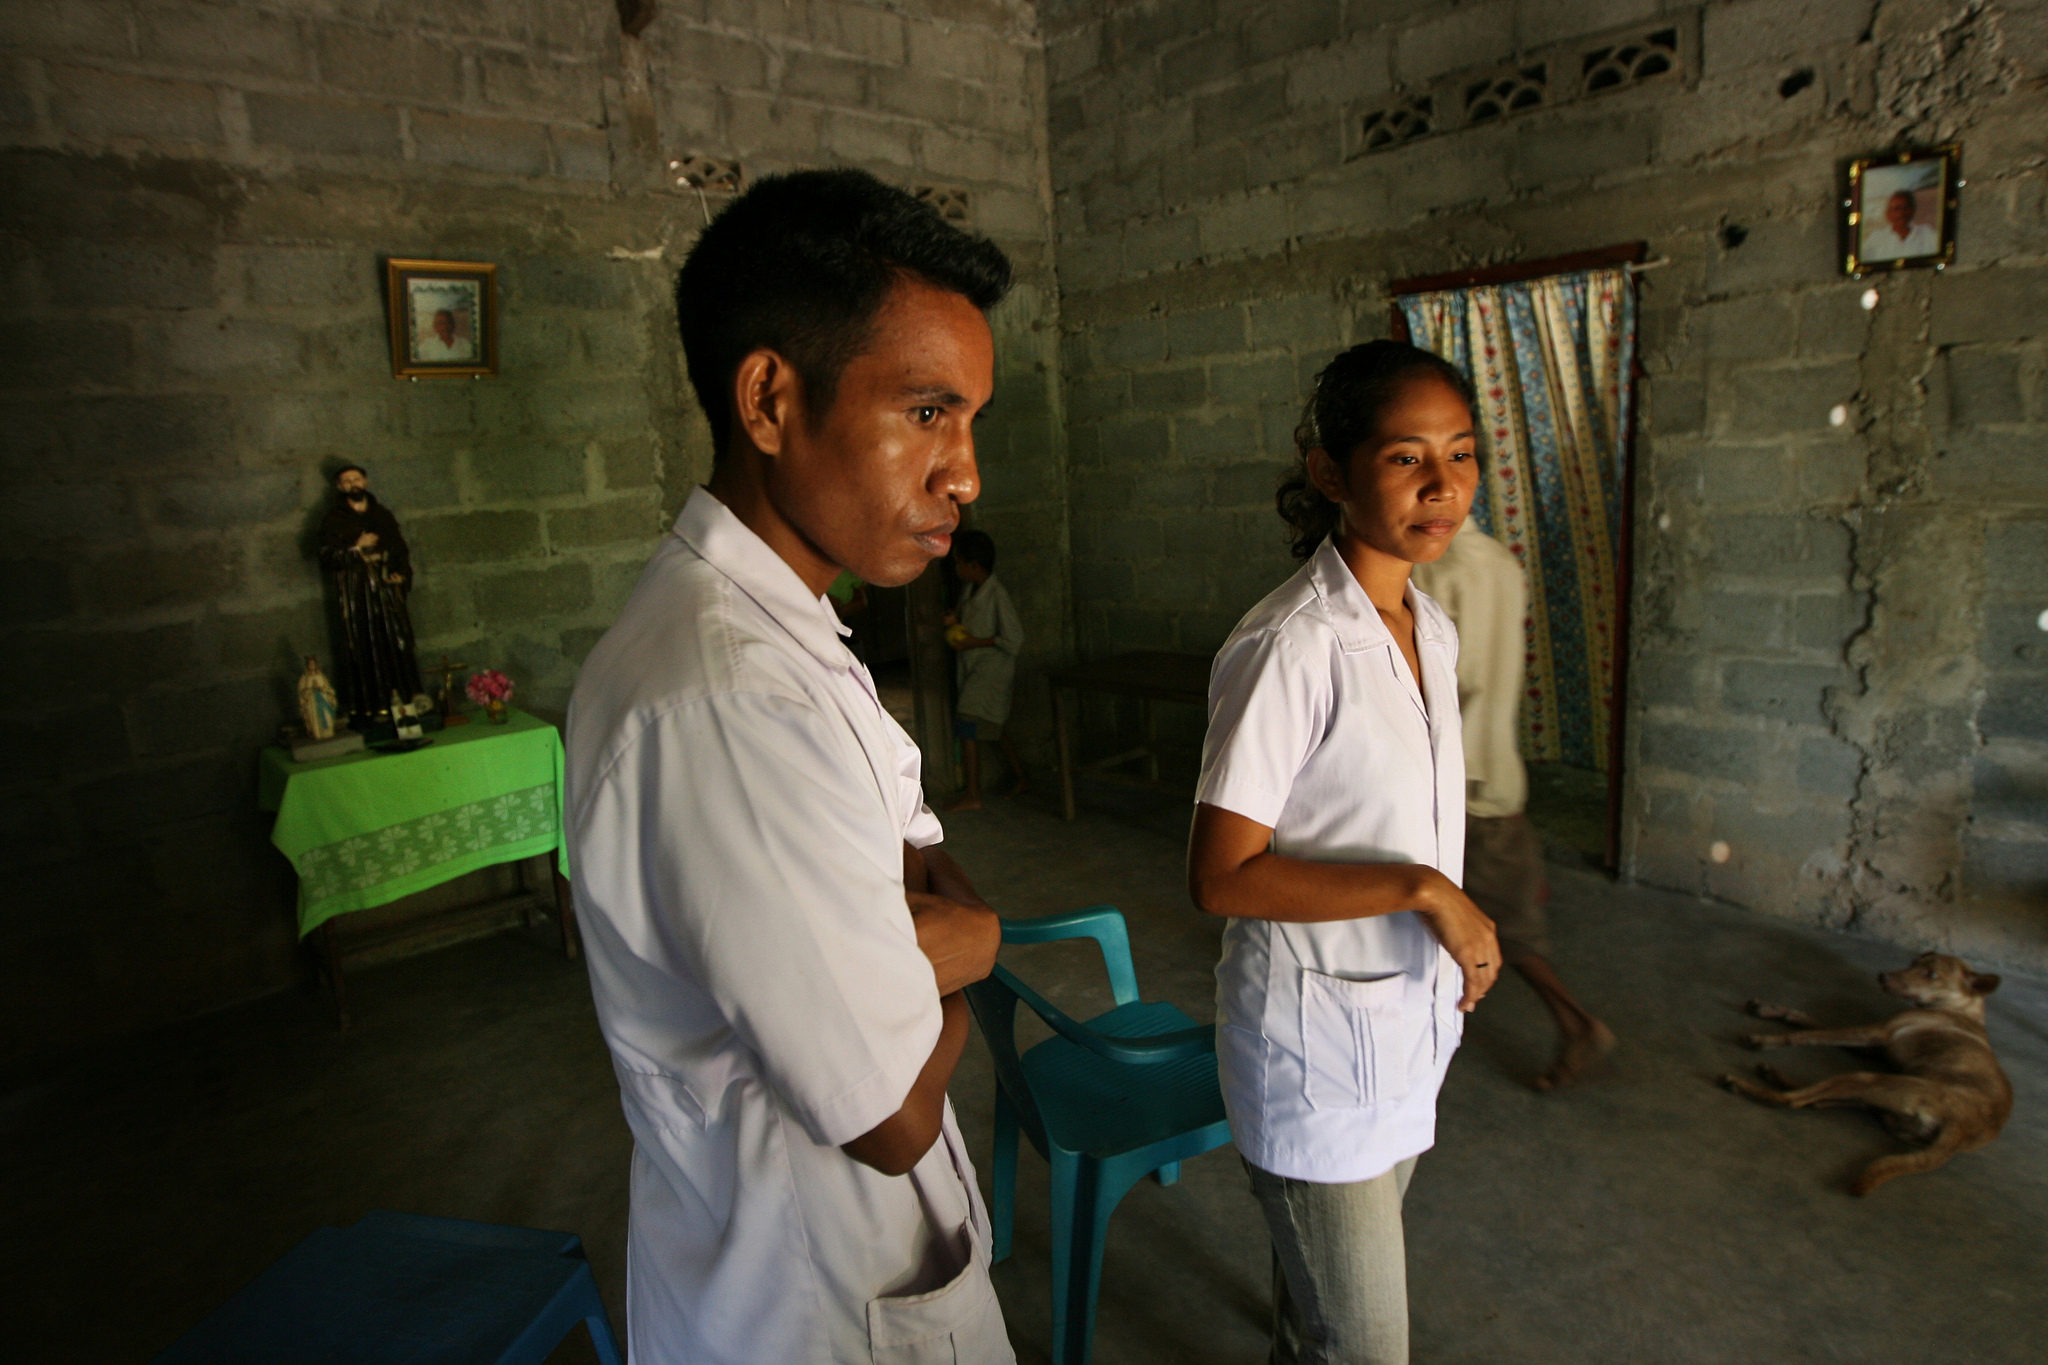 Trainee doctor visits a residence to talk about importance of sanitation (Dean Sewell/oculi/Agence Vu for WaterAid/DFAT/Flickr/CC BY 2.0)